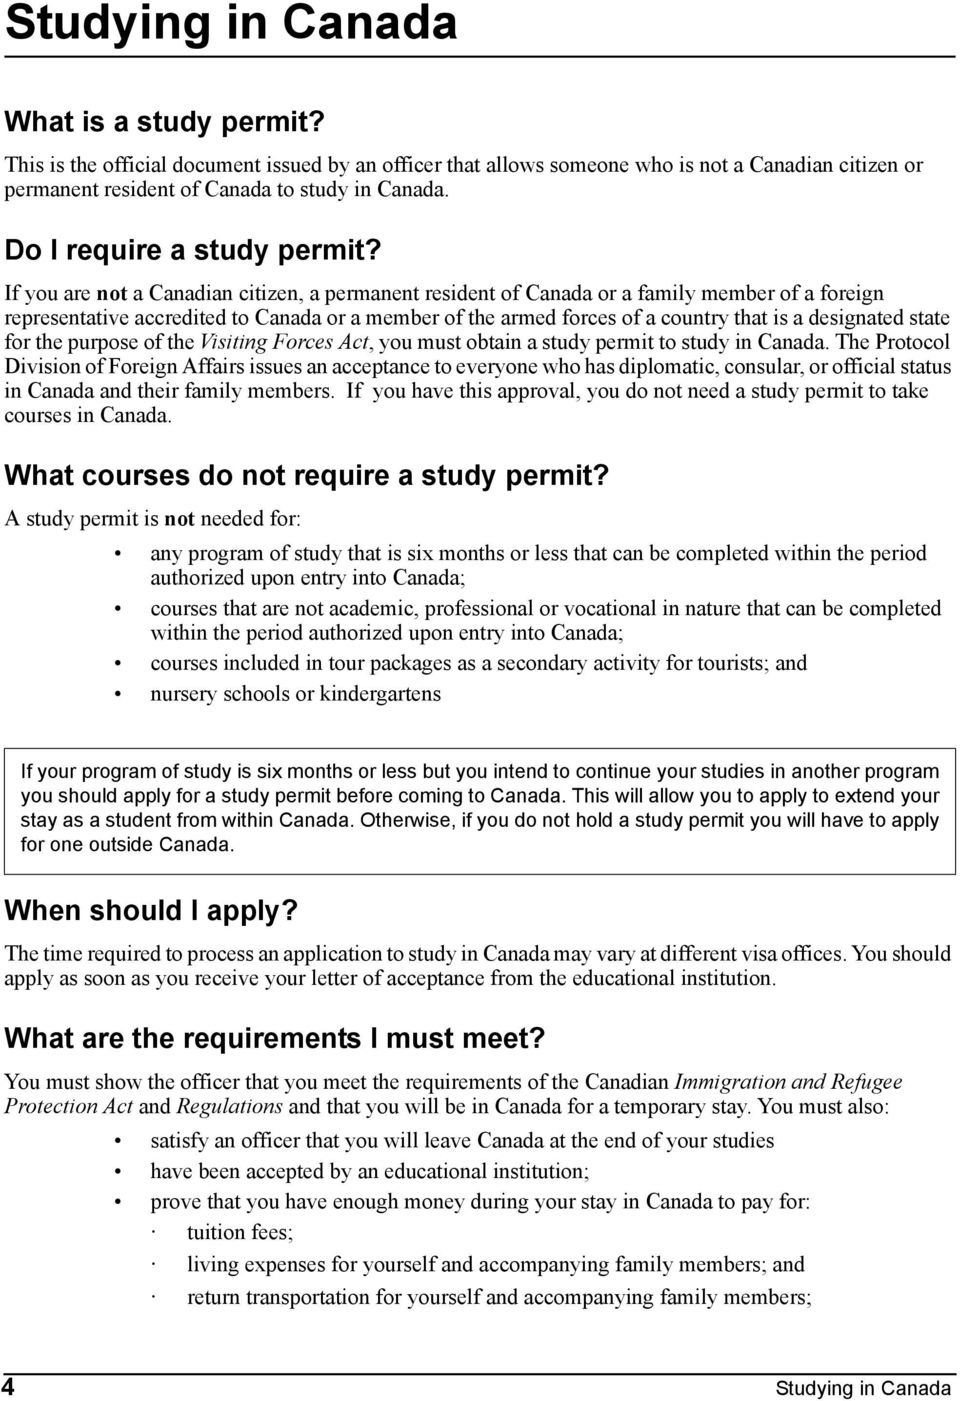 Immigration Canada Studying In Canada Applying For A Study Permit Outside Canada Table Of Contents Appendices Forms Pdf Free Download